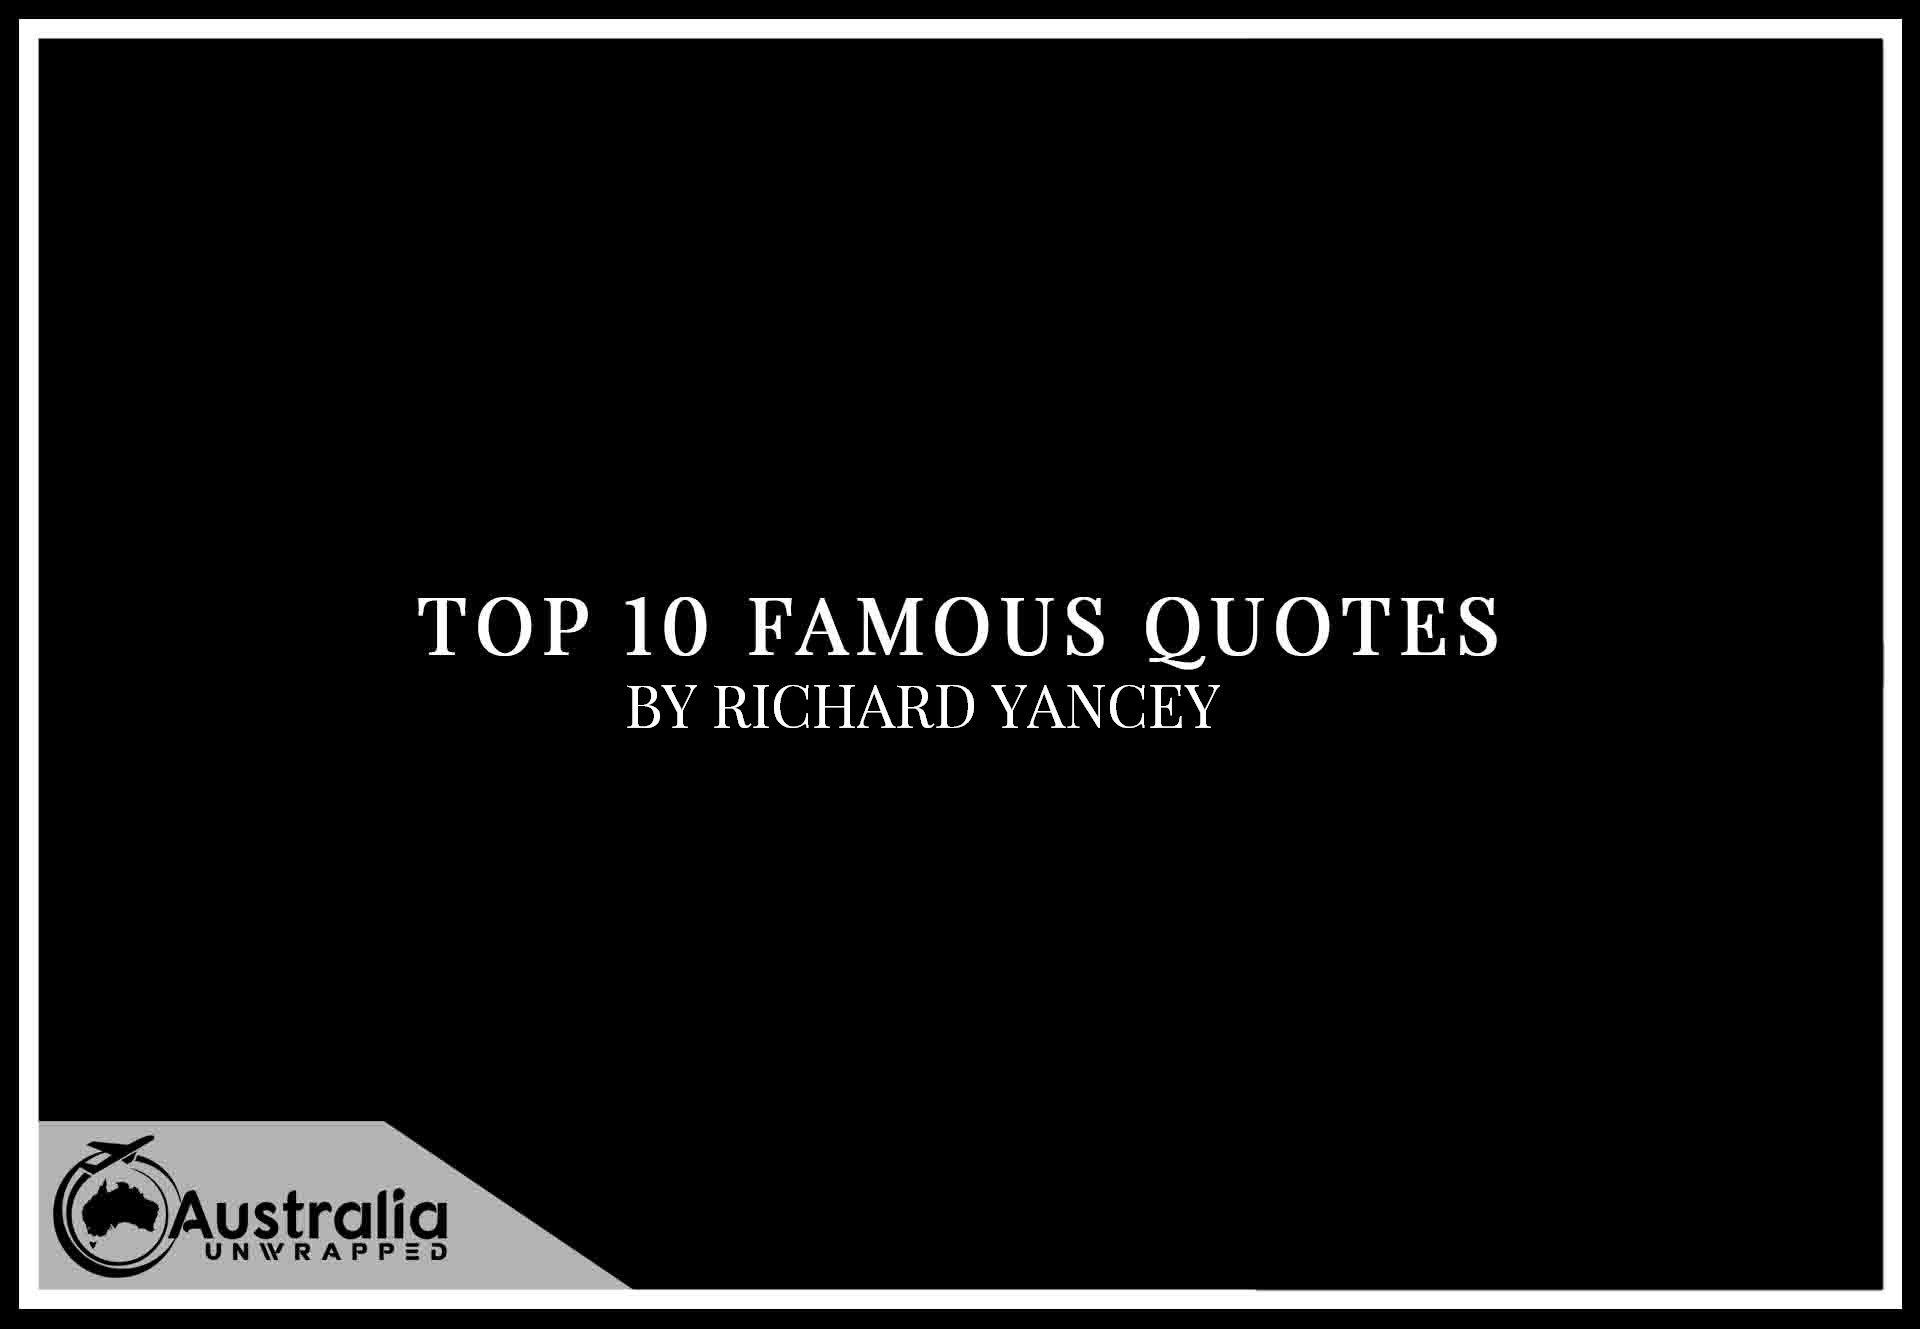 Top 10 Famous Quotes by Author Rick Yancey